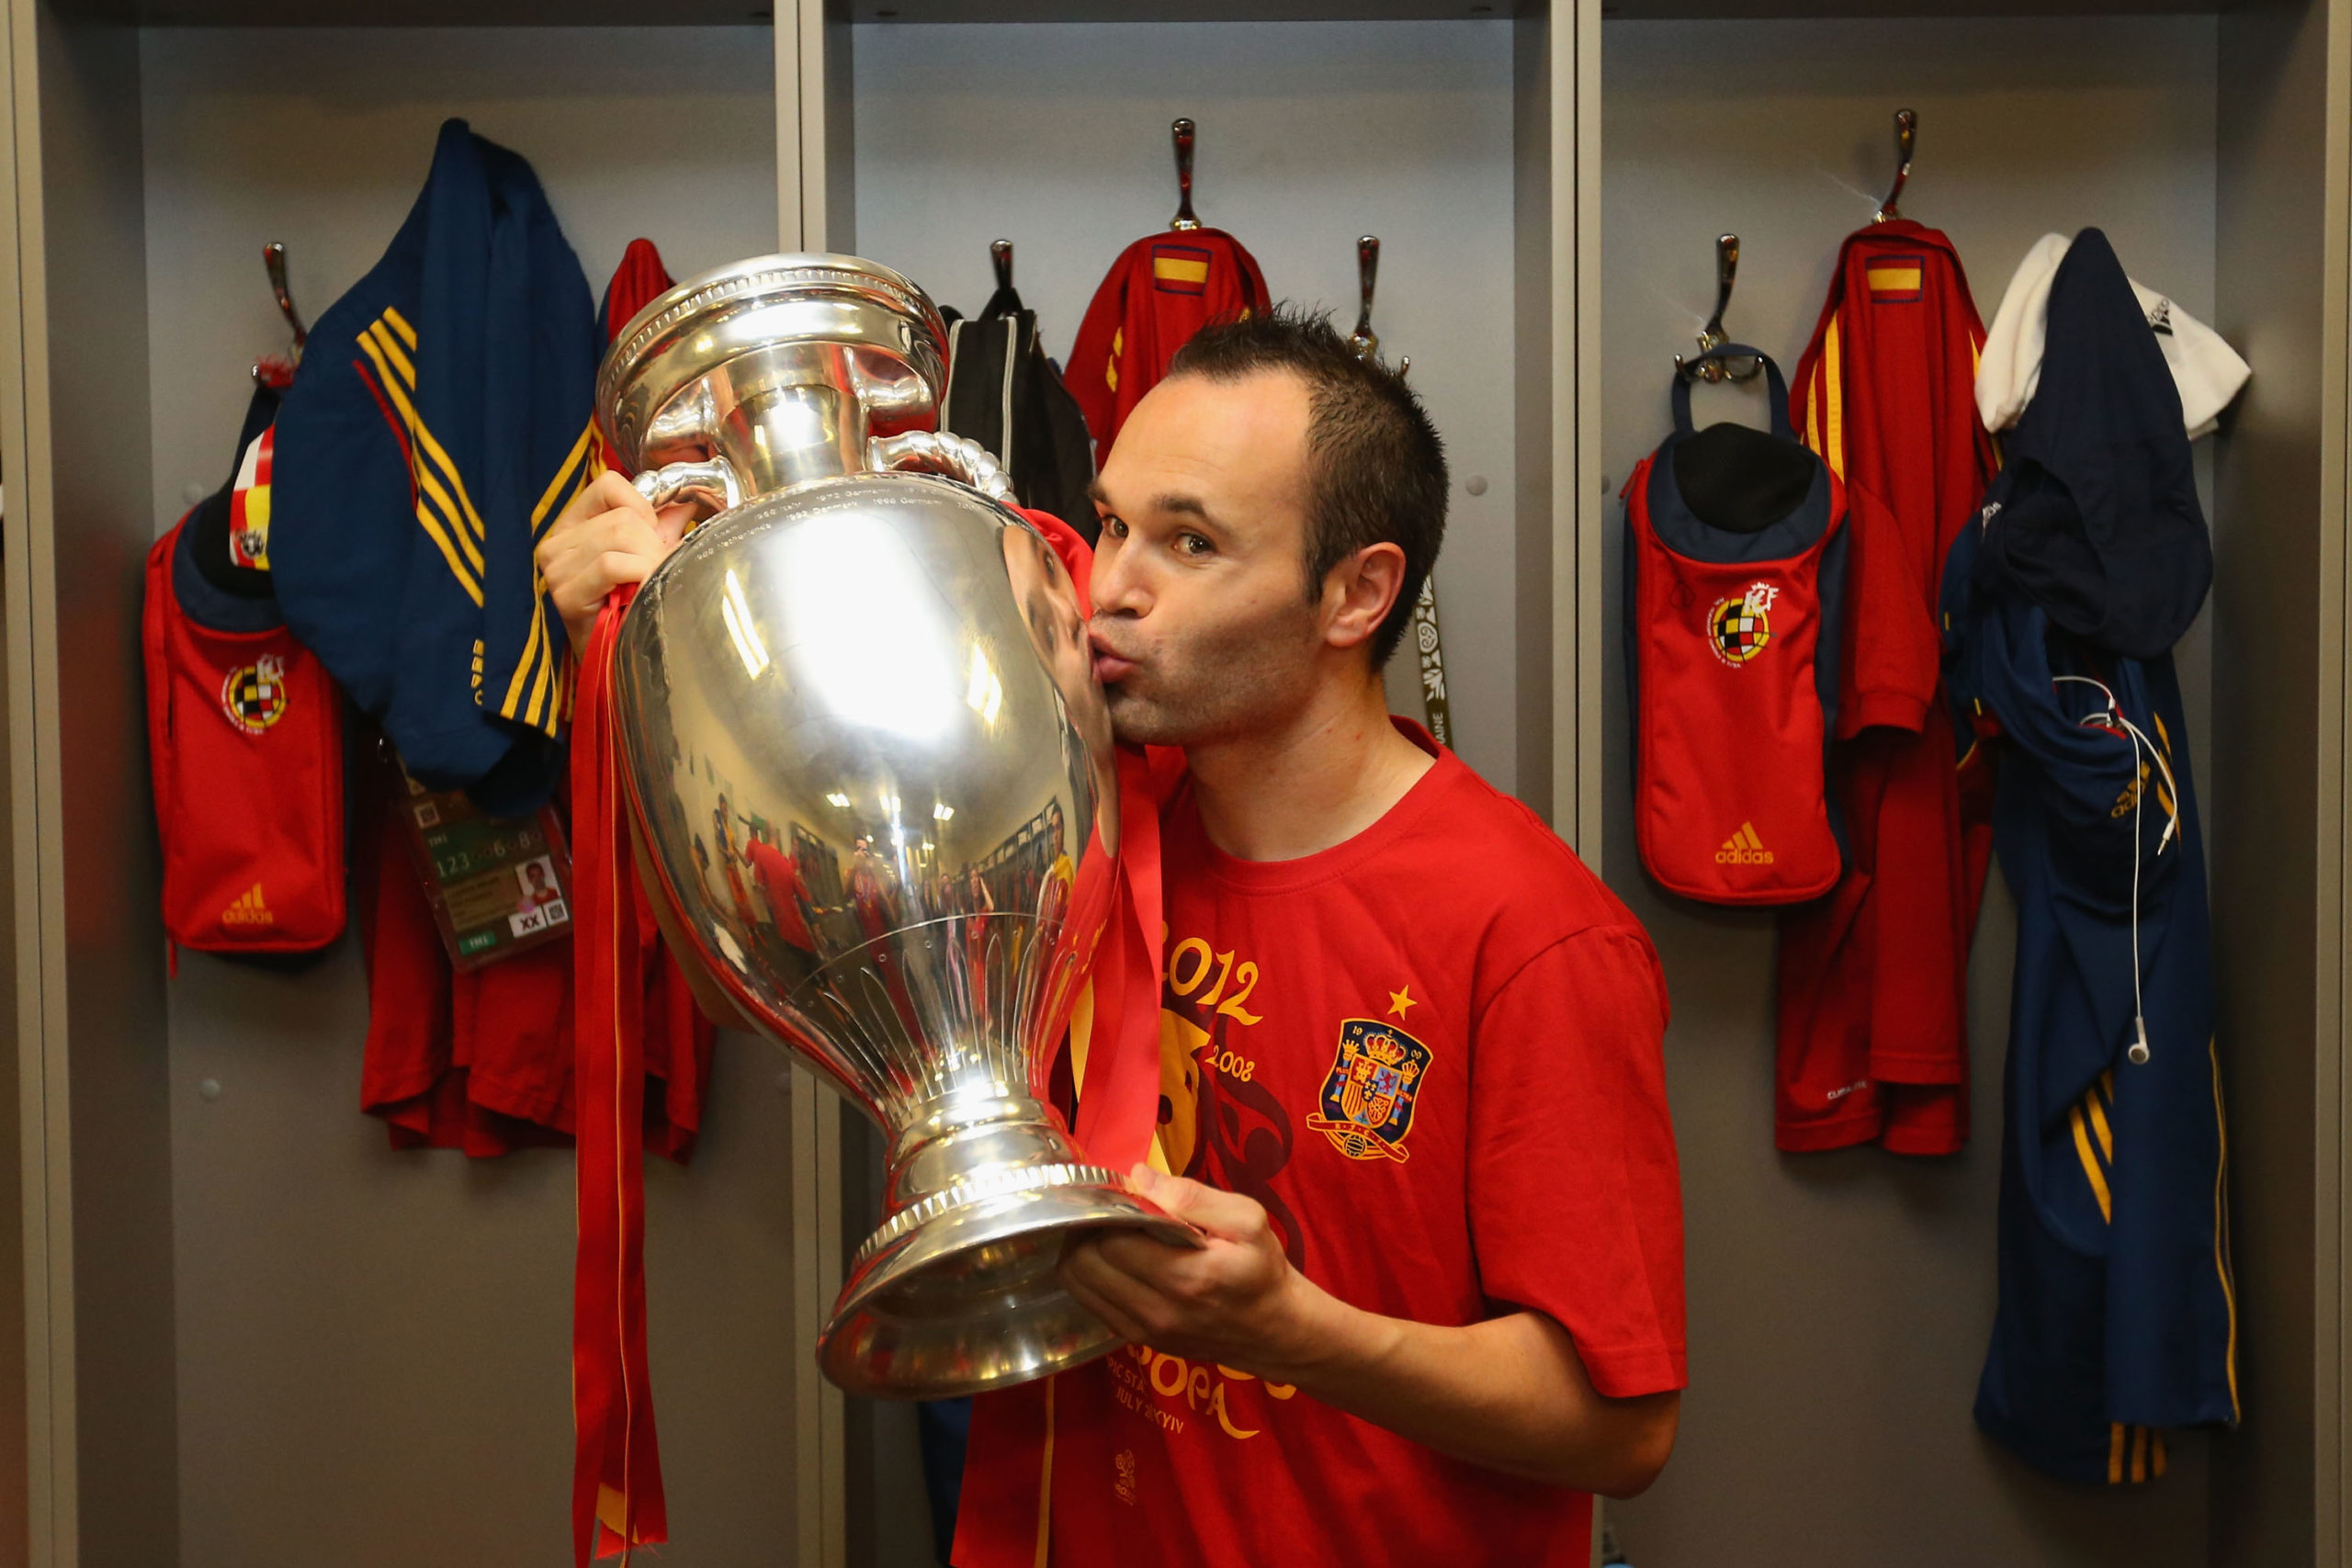 Andres Iniesta holding the Euro 2012 trophy in Spain's dressing room